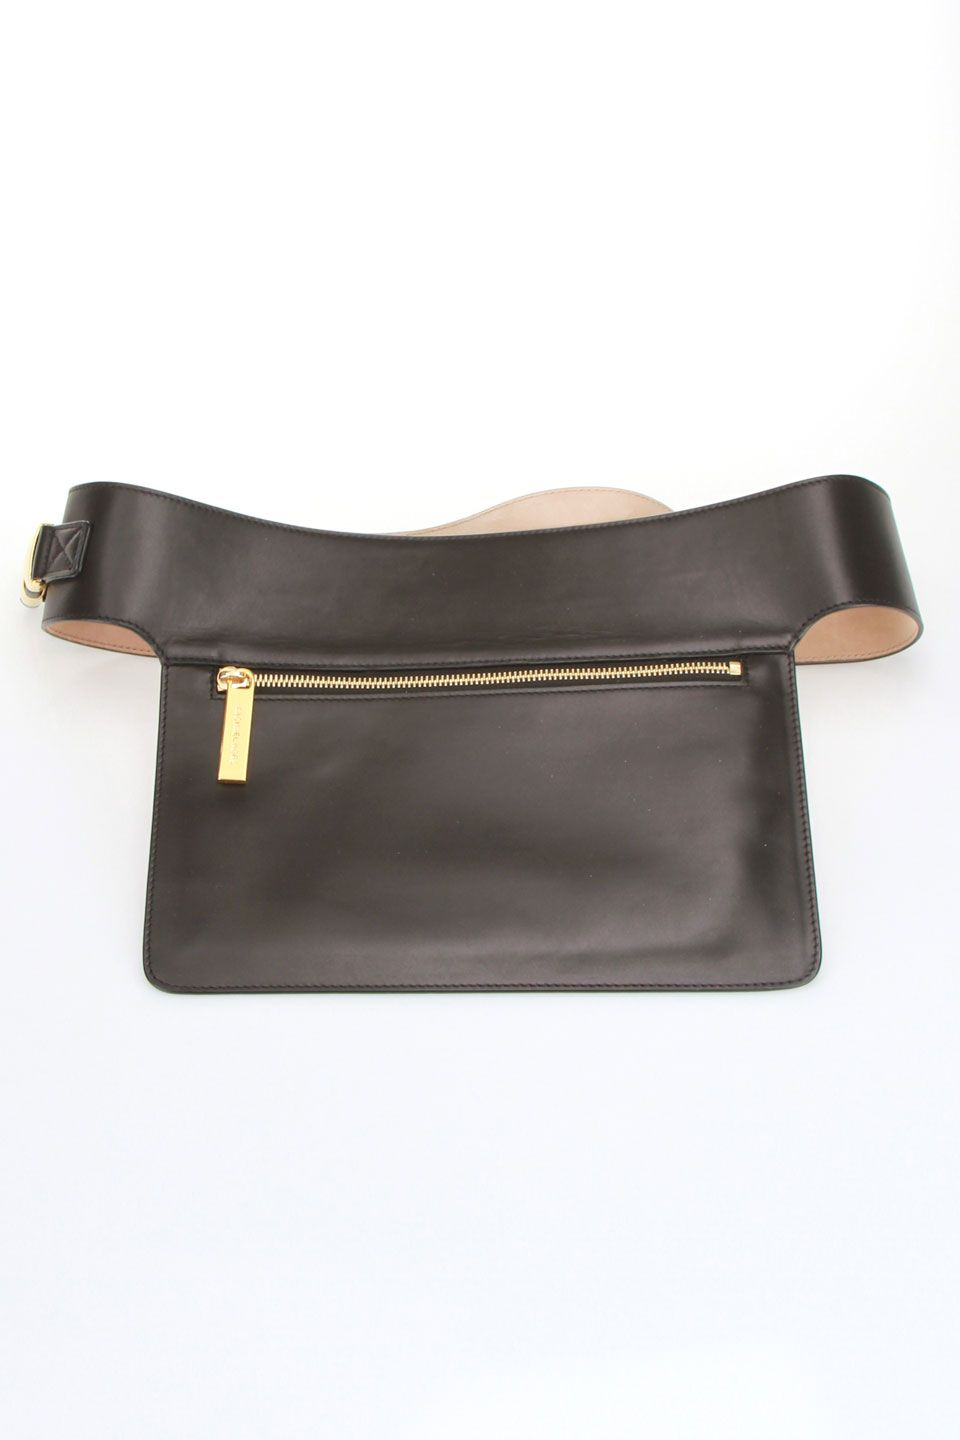 88b58f841b47 Hand free pocket belt - great for concerts! Leather Fanny Pack, Leather  Belt Bag